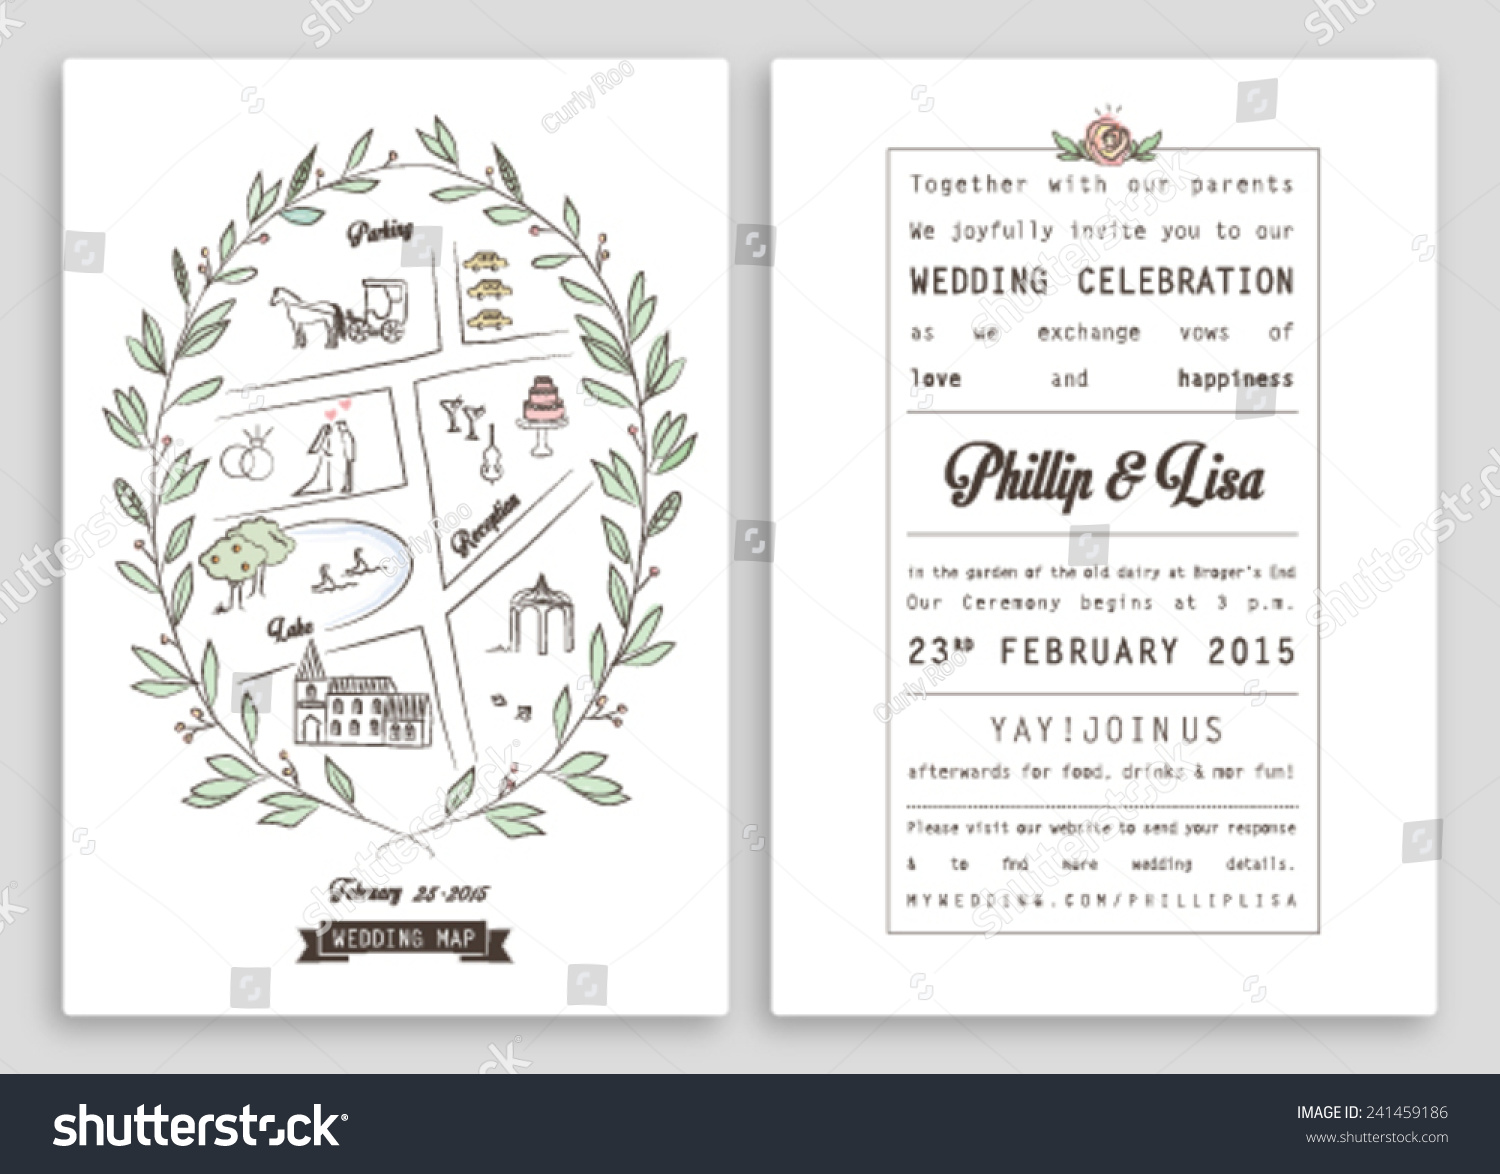 WEDDING INVITATION TEMPLATE WITH MAP ROYAL DESIGN Nice Layout Editable Vector Illustration